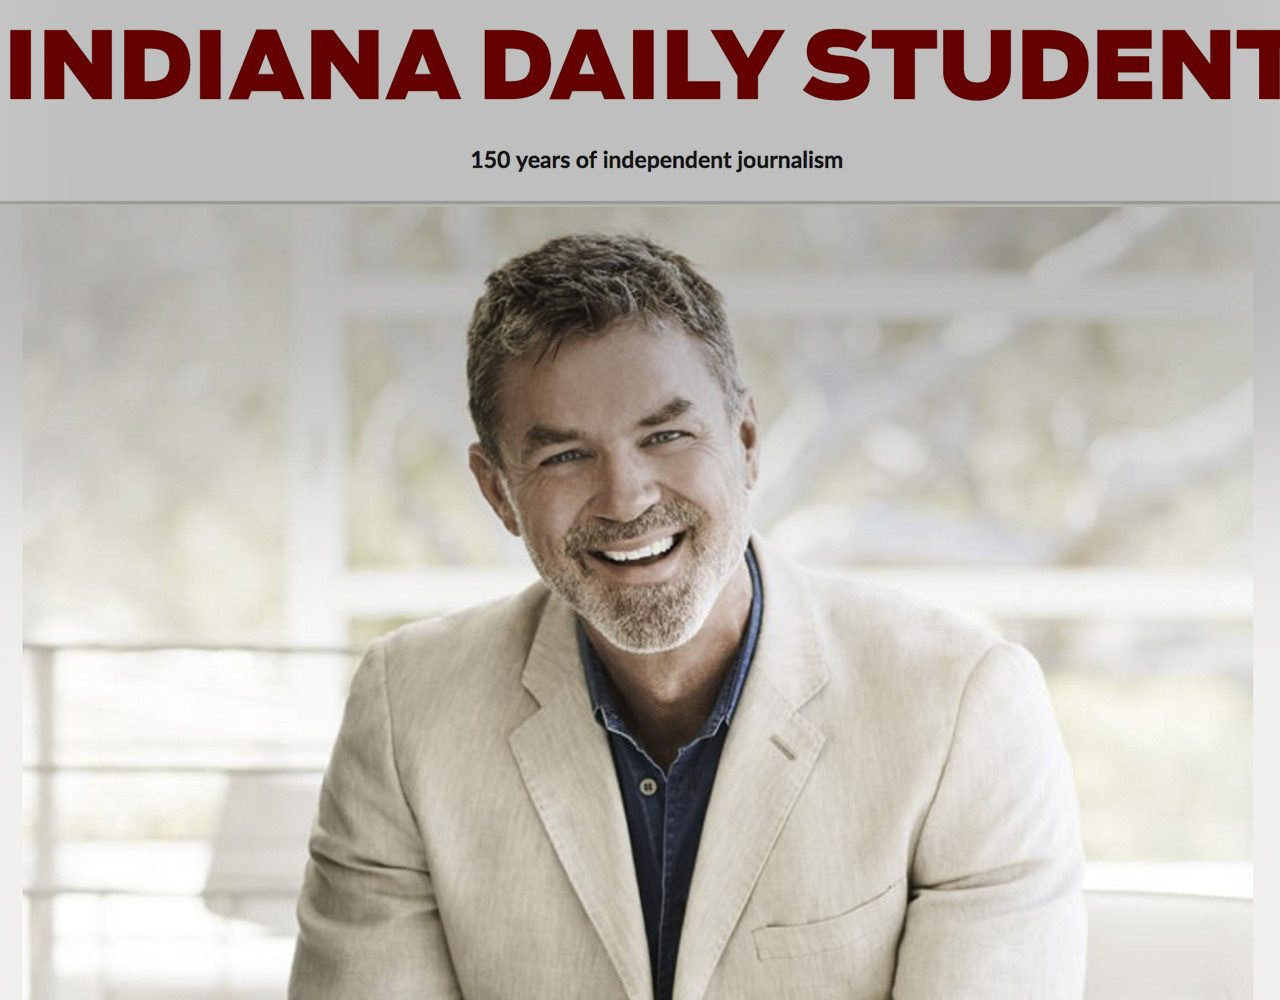 Chris Gernon featured in Indiana Daily Student, and his upcoming TedxTalk at the Indaiana University.